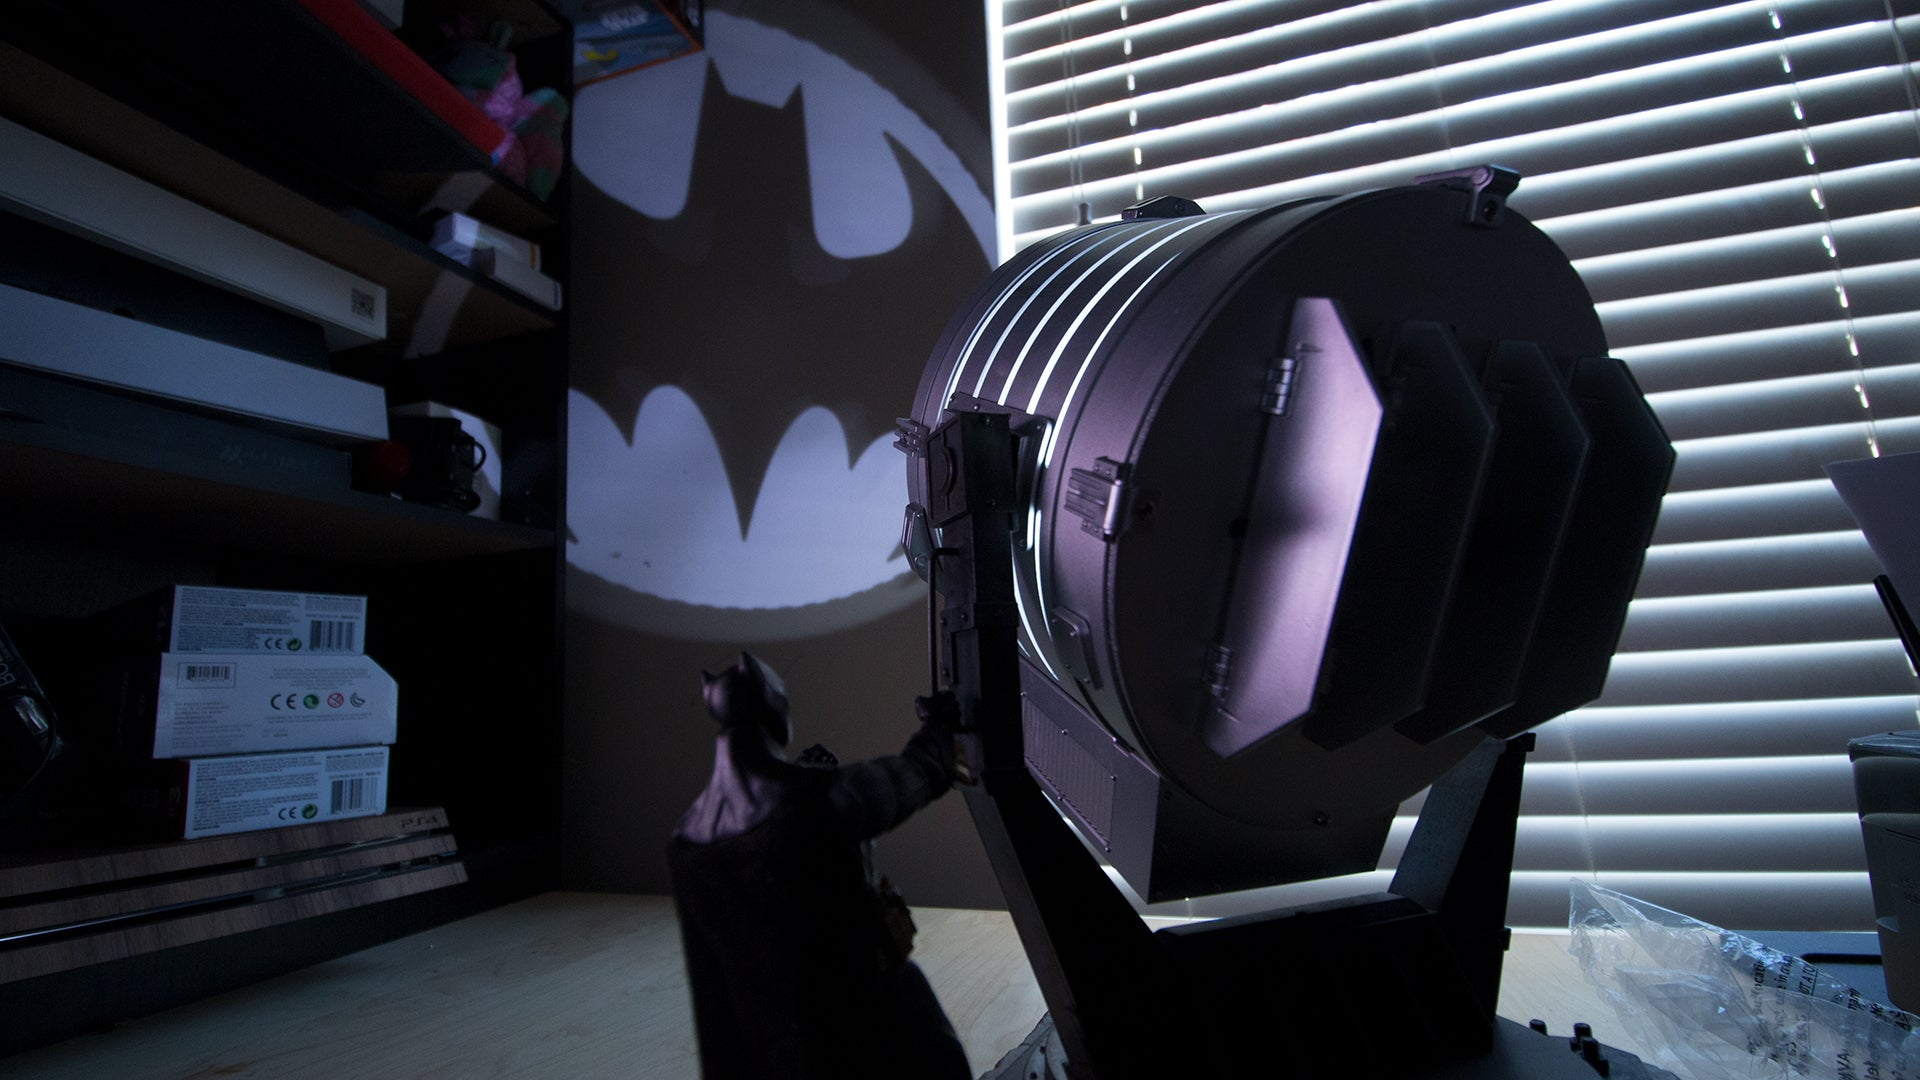 For just 300 you can own a tiny bat signal batman not included even with the overhead light on in my office and my camera lights set up for photos the bat symbol is clearly visible on my ceiling buycottarizona Image collections